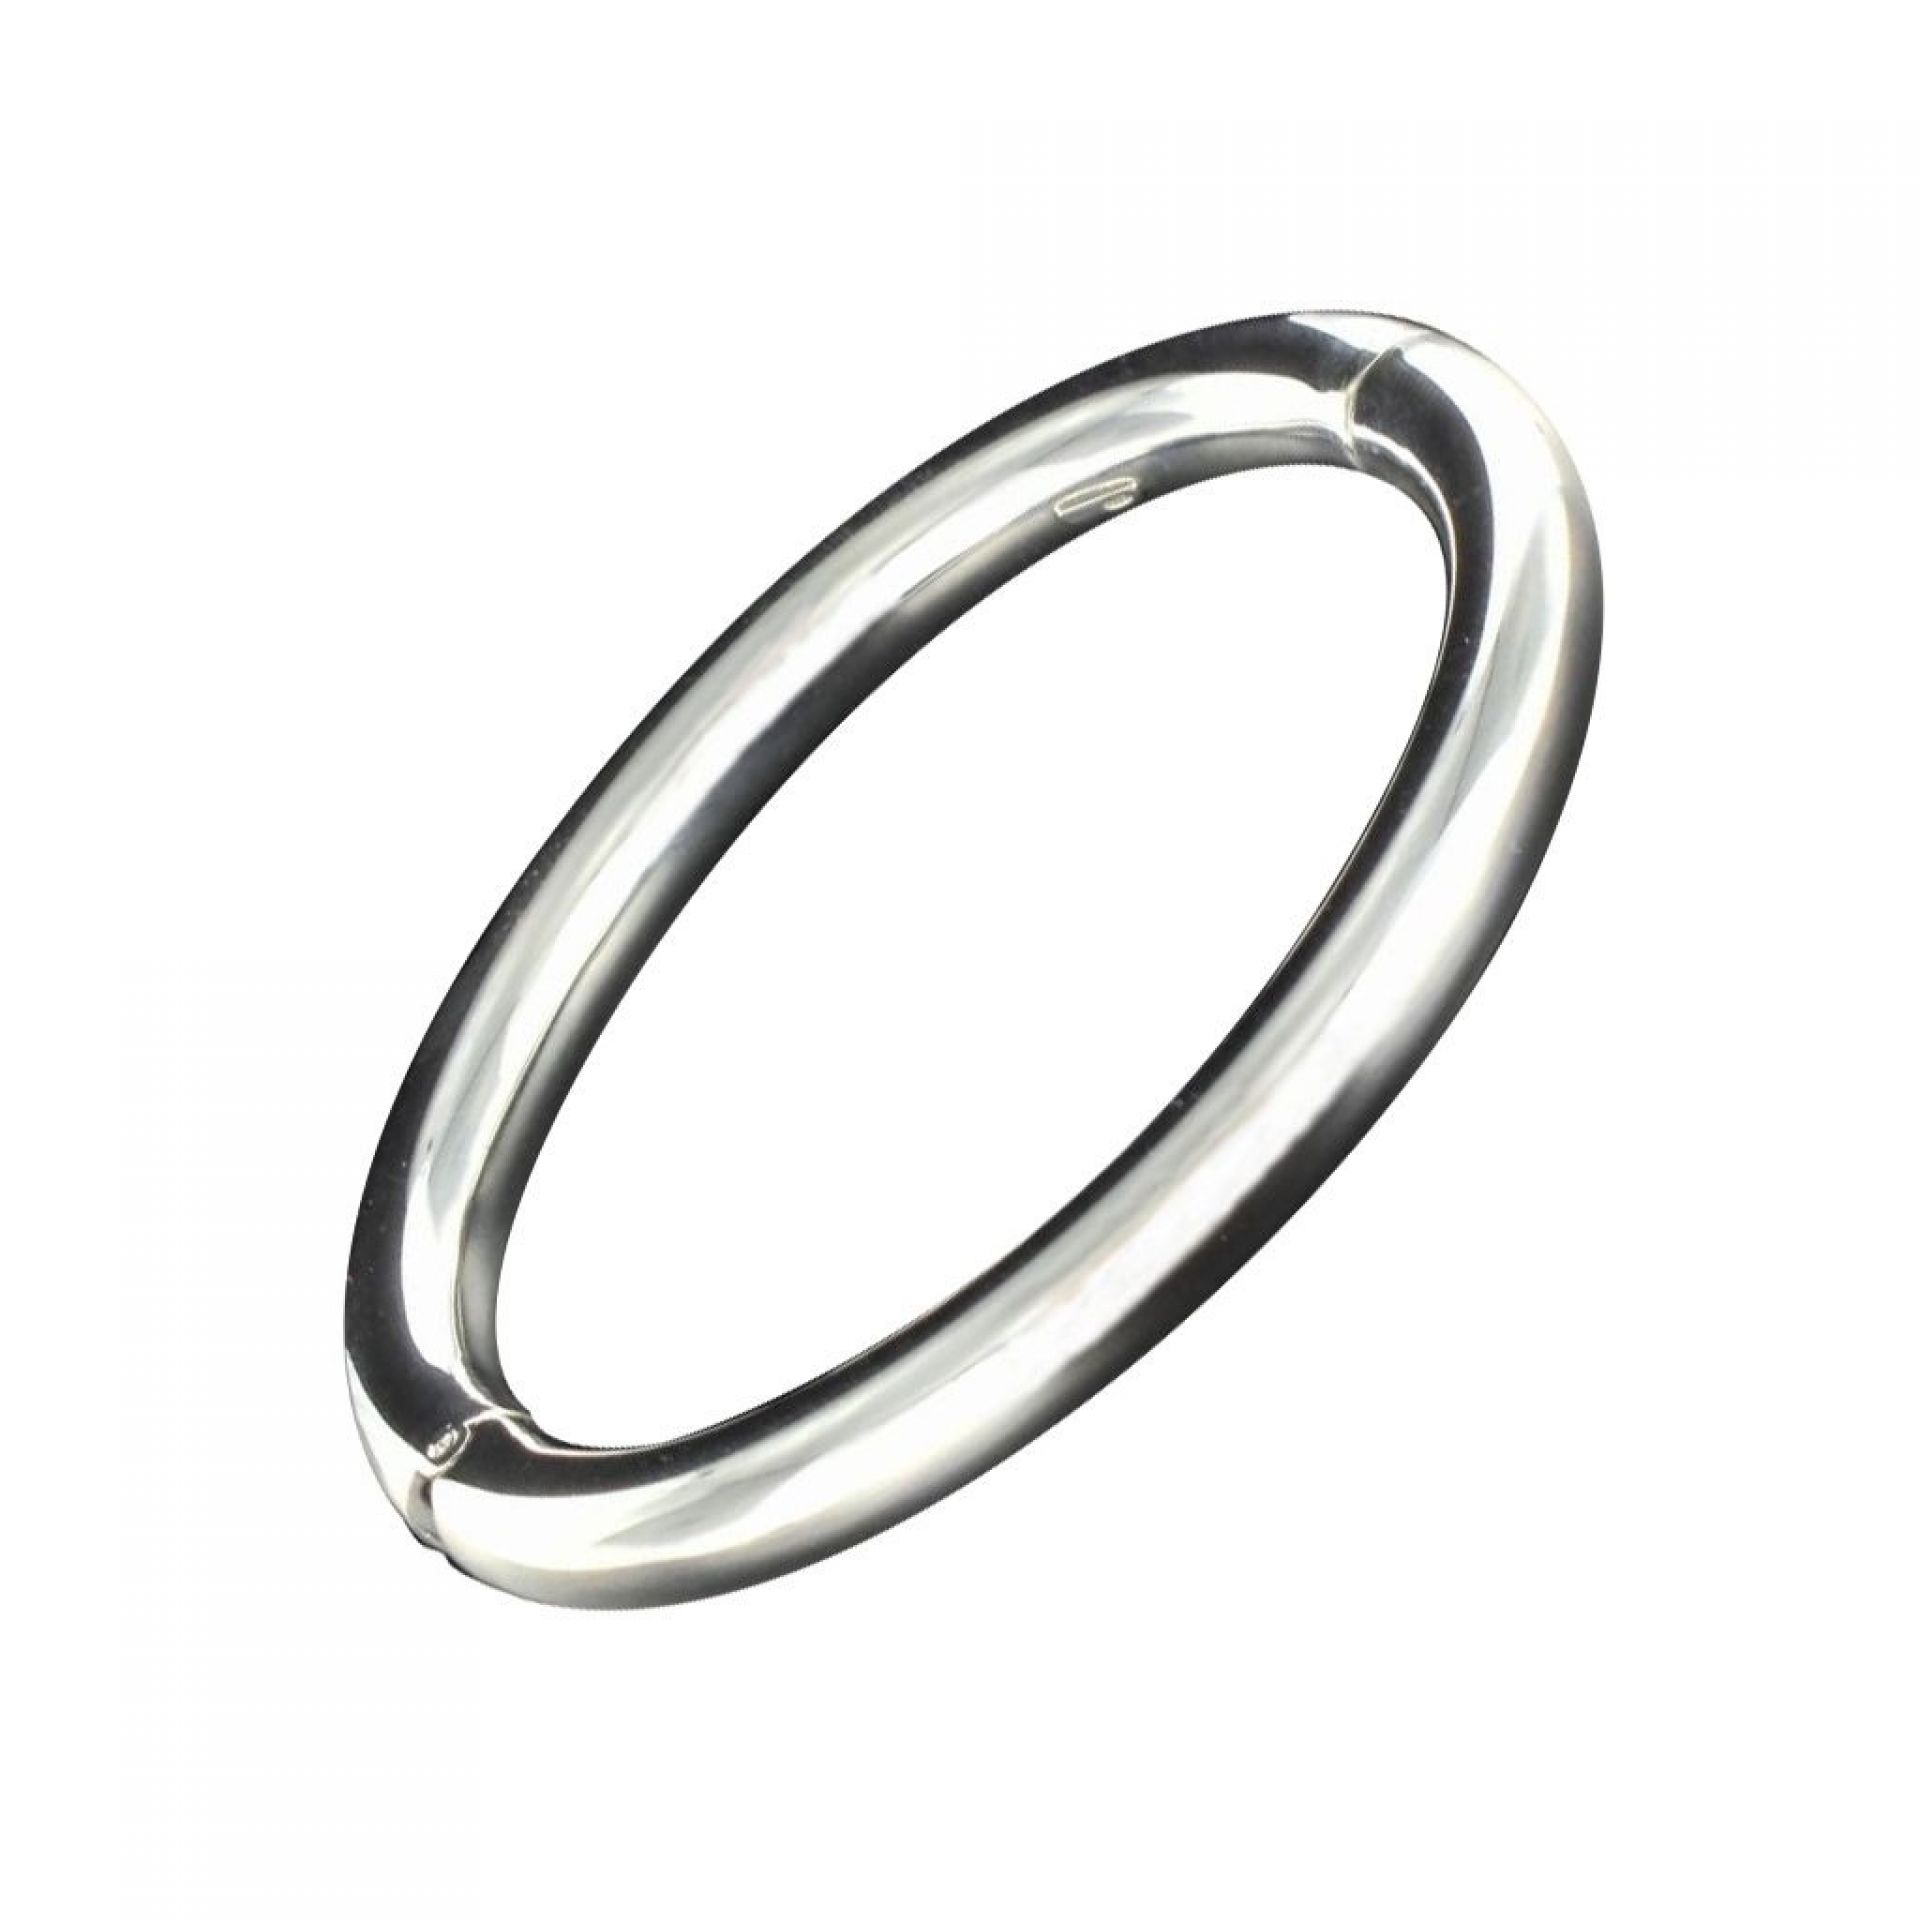 Solid silver bangle bracelet